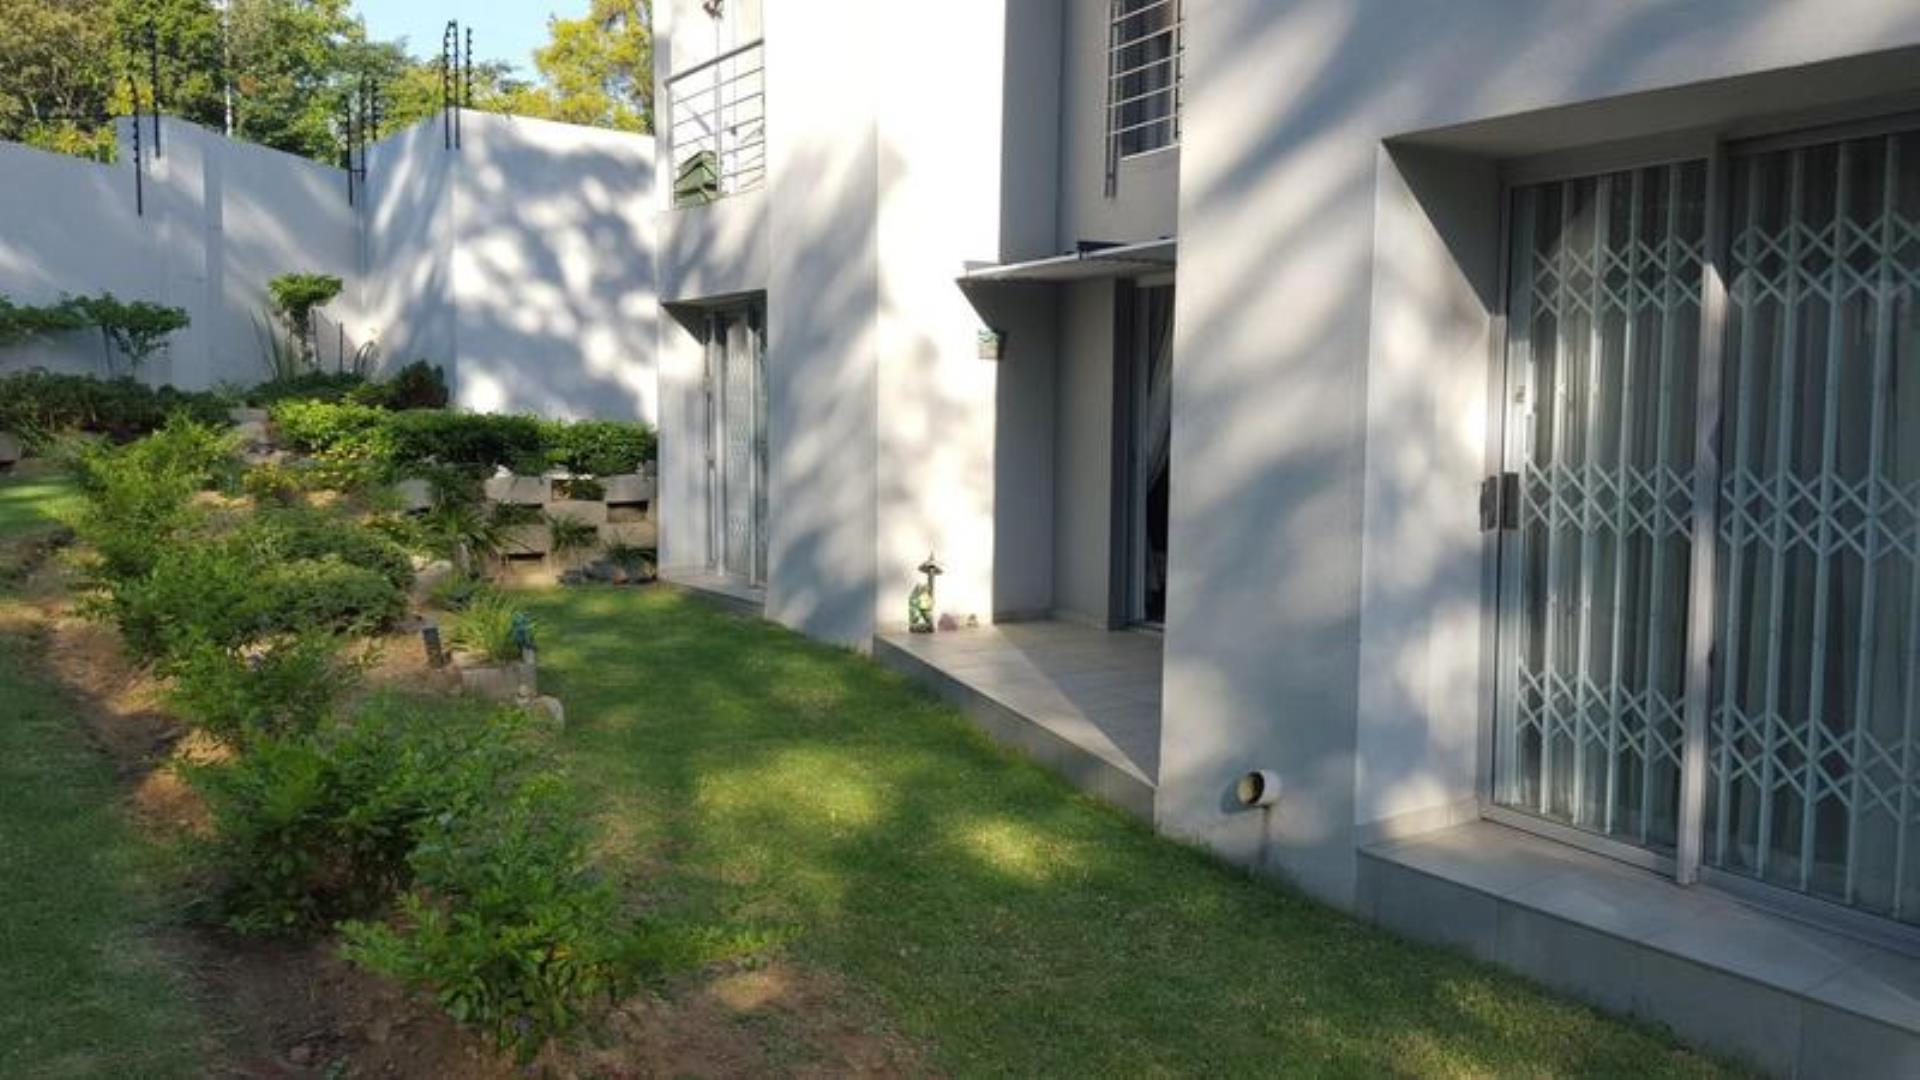 3 Bedroom Apartment for Sale in Morningside, Sandton - Gauteng